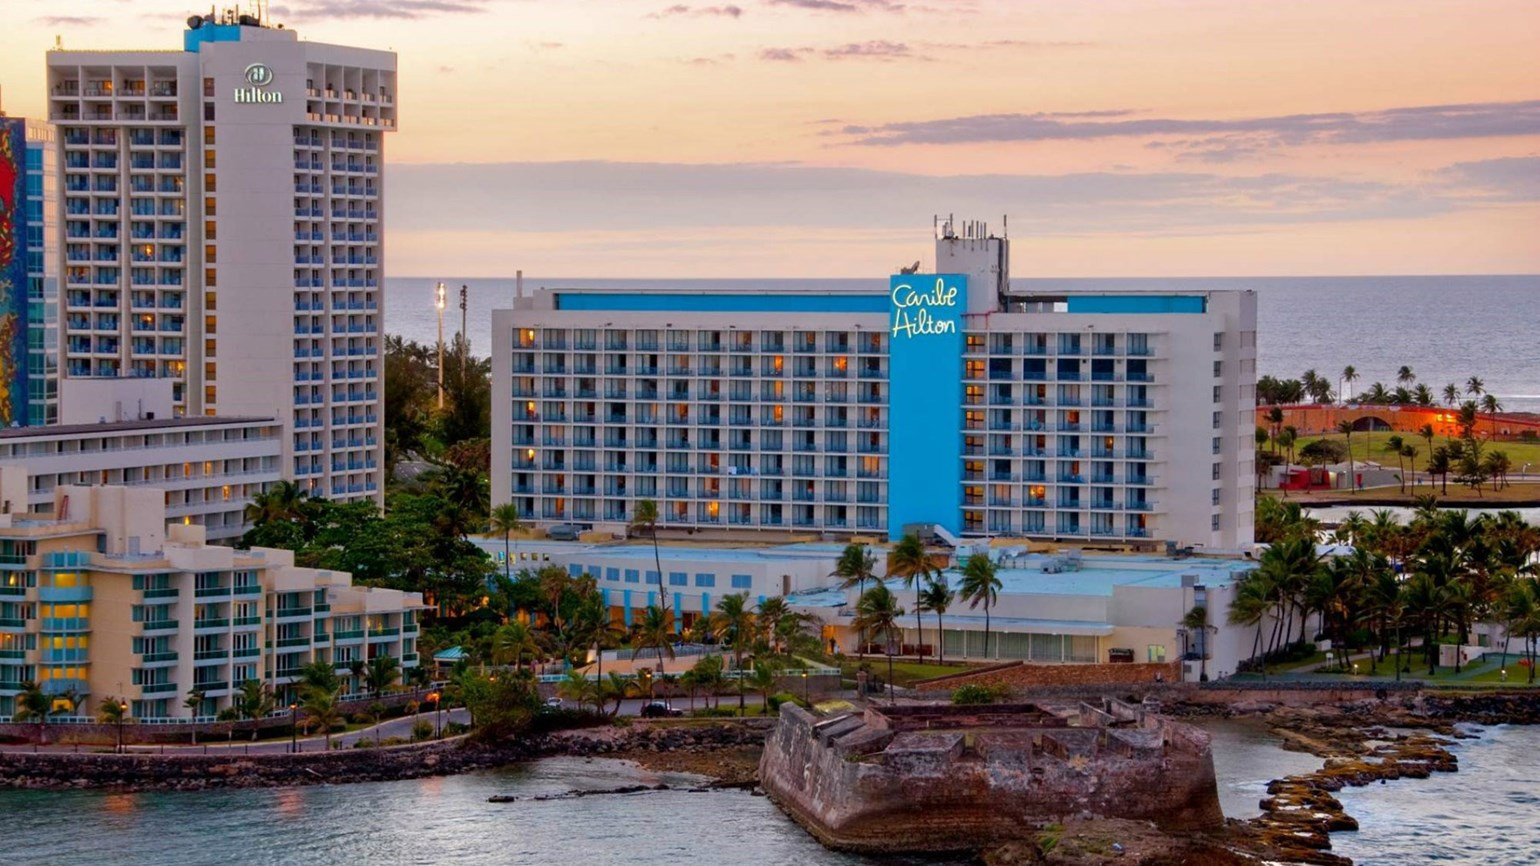 Iconic Caribe Hilton in Puerto Rico to reopen in May